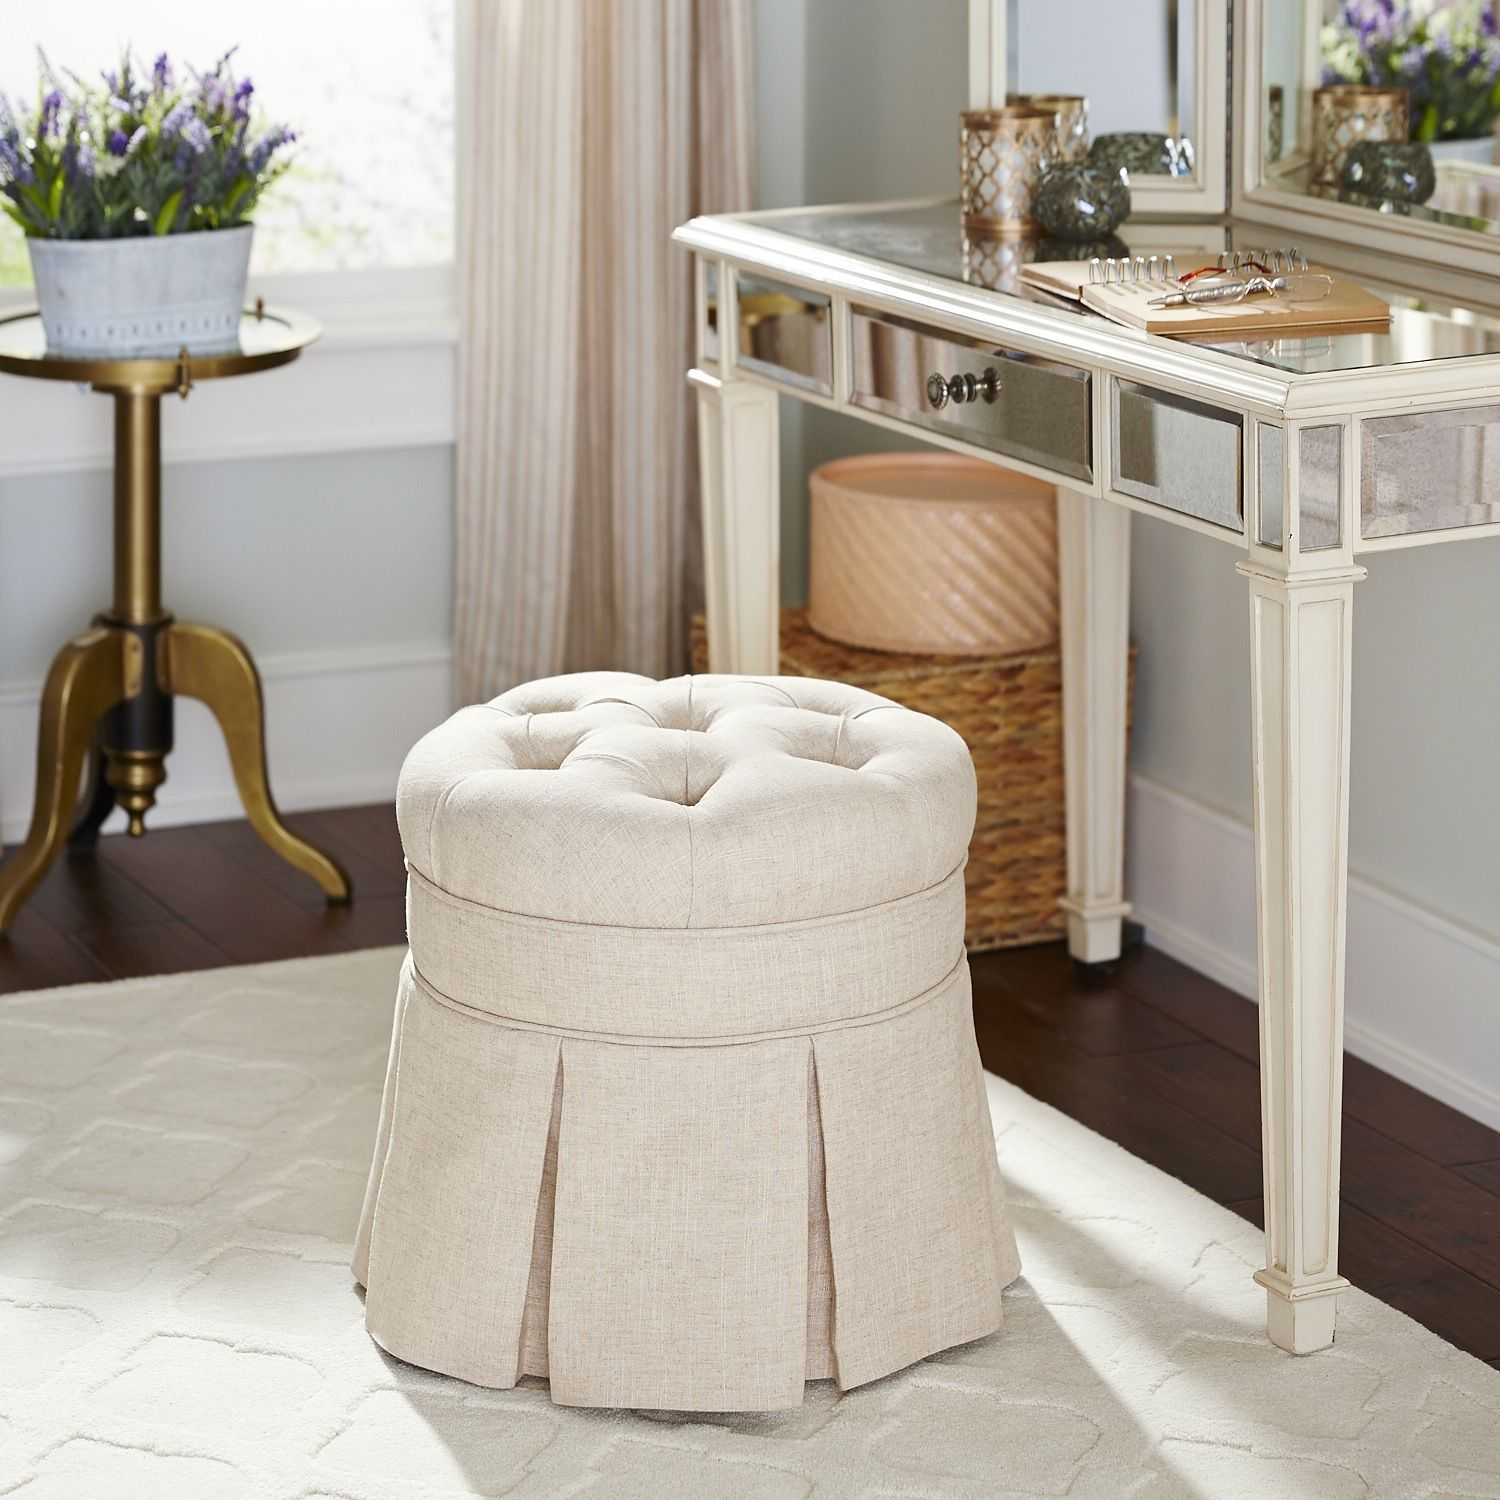 Bathroom Vanity Stools Avery Vanity Stool Bathroom Remodel Ideas Vanity Stool